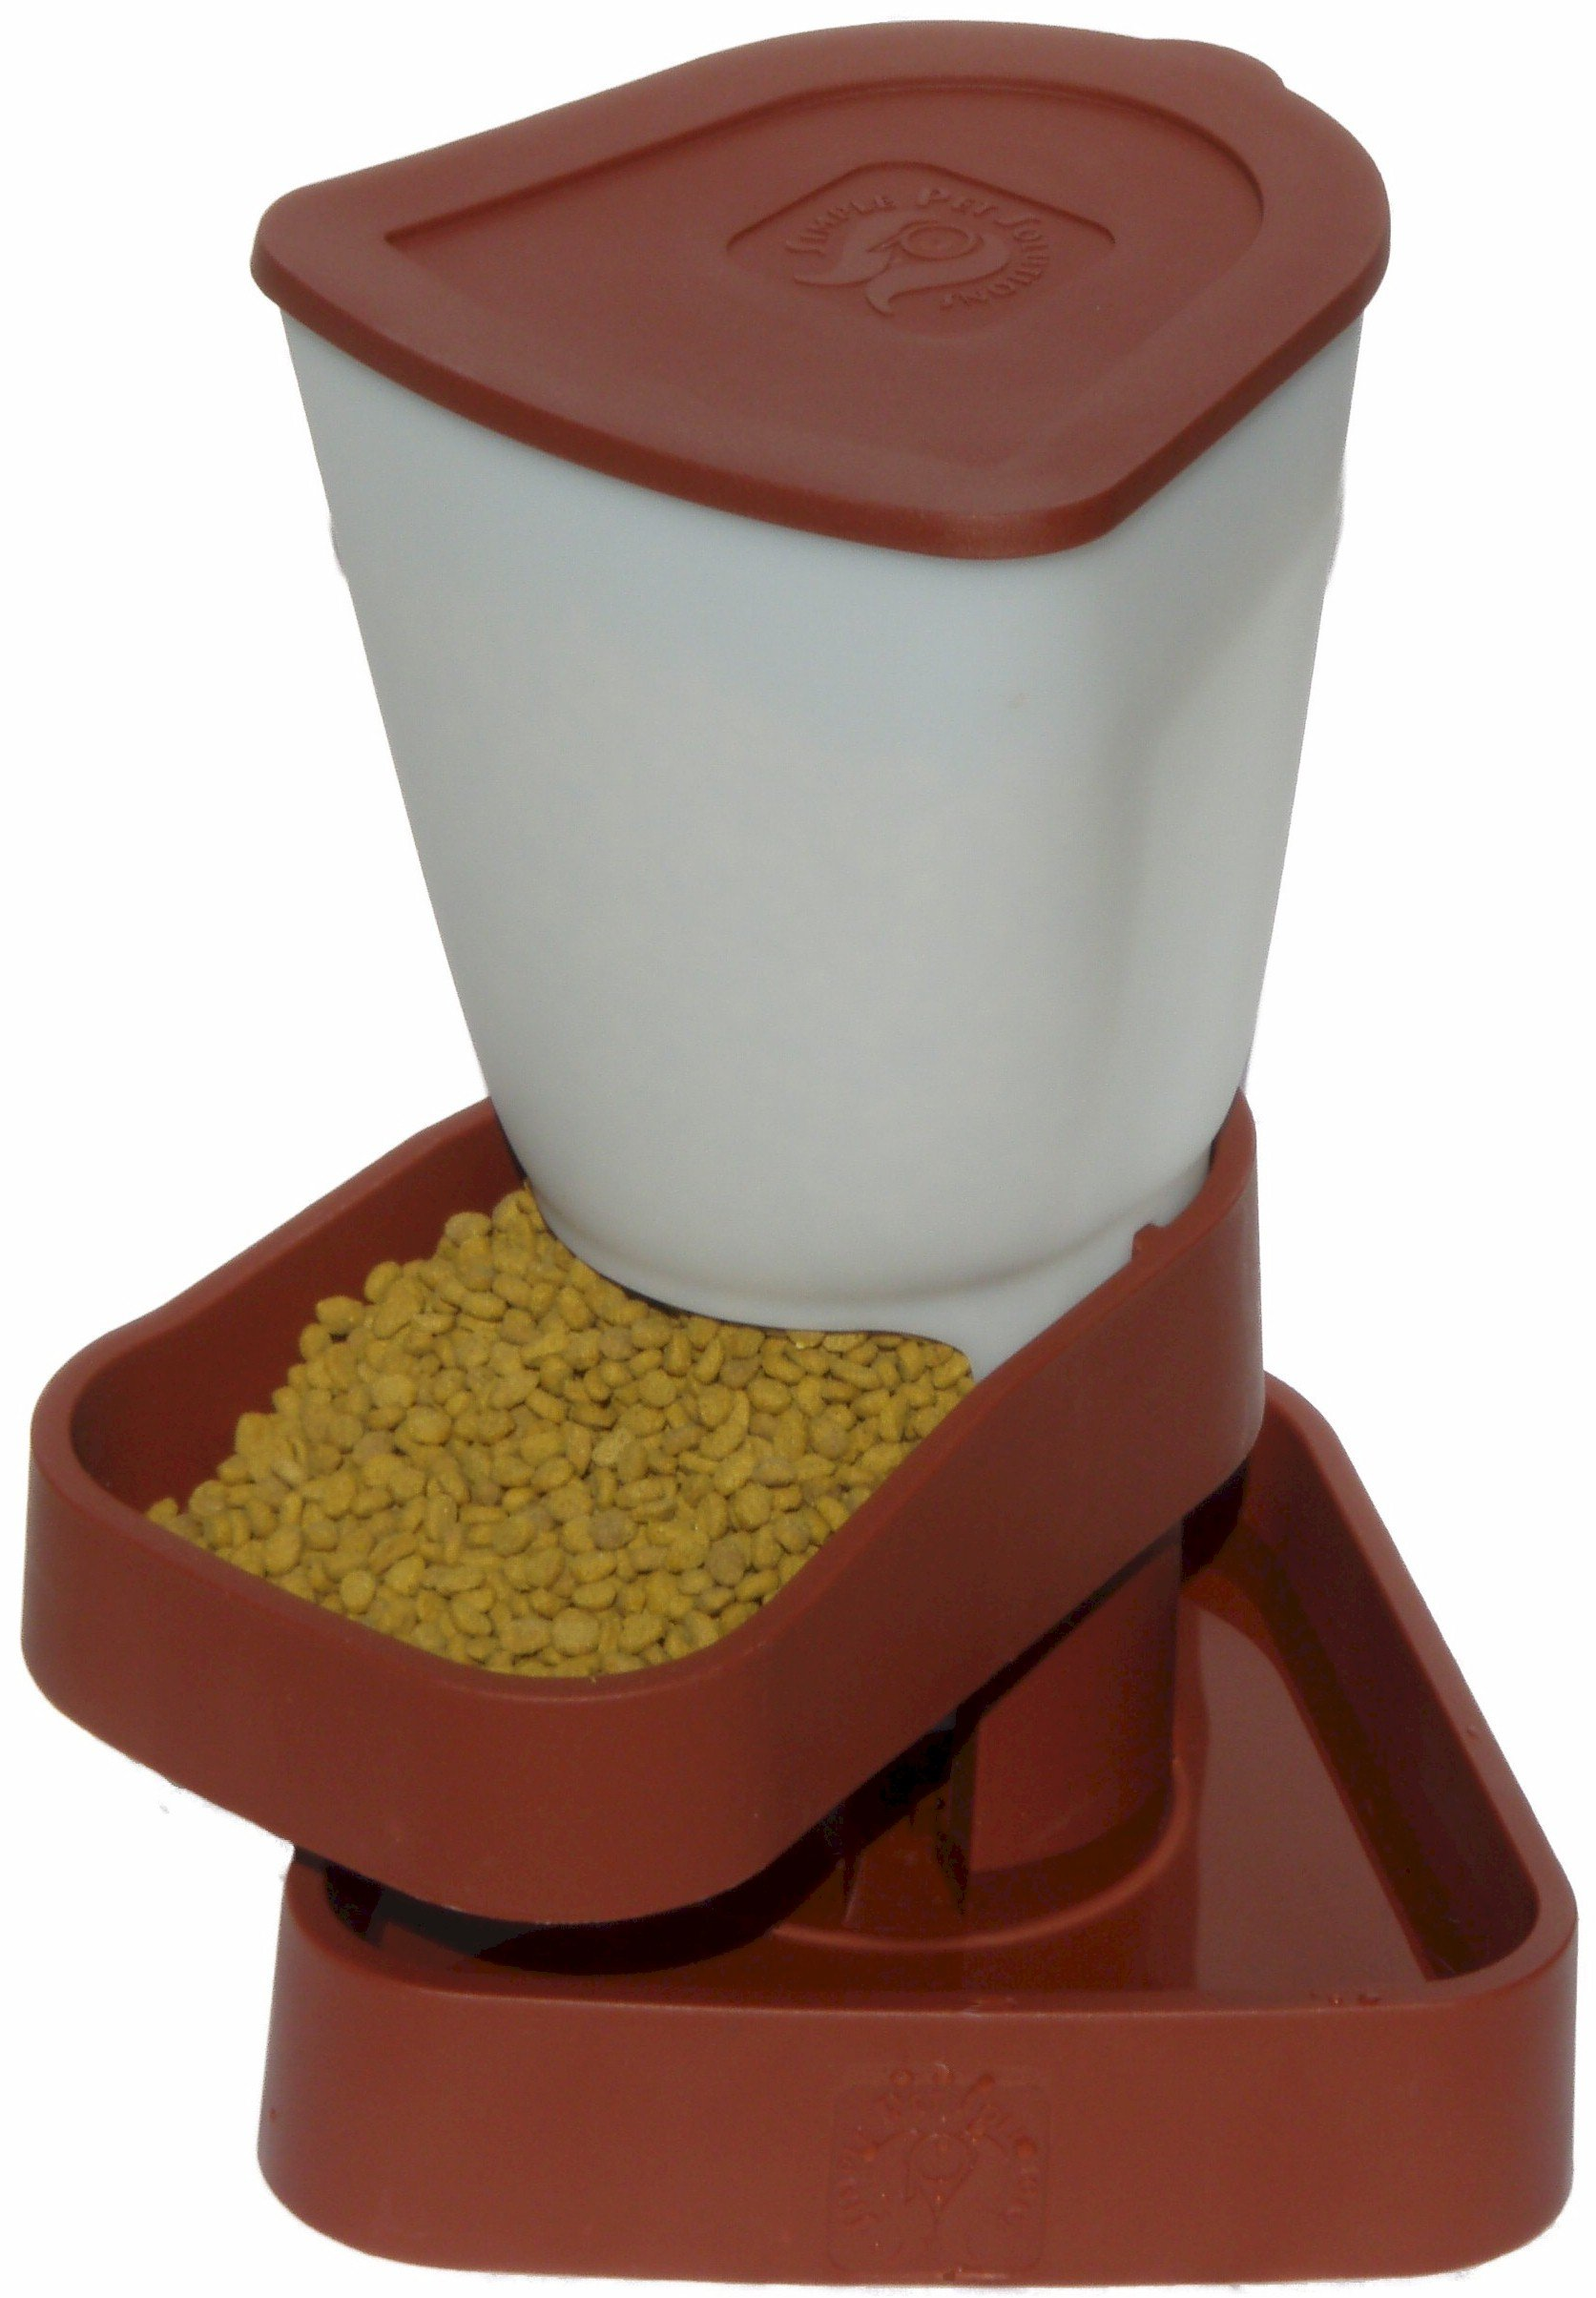 Farm Innovators Simple Pet Feeding Friend Auto Feeder/Waterer - Model 20081-T, Small, Terra Cotta